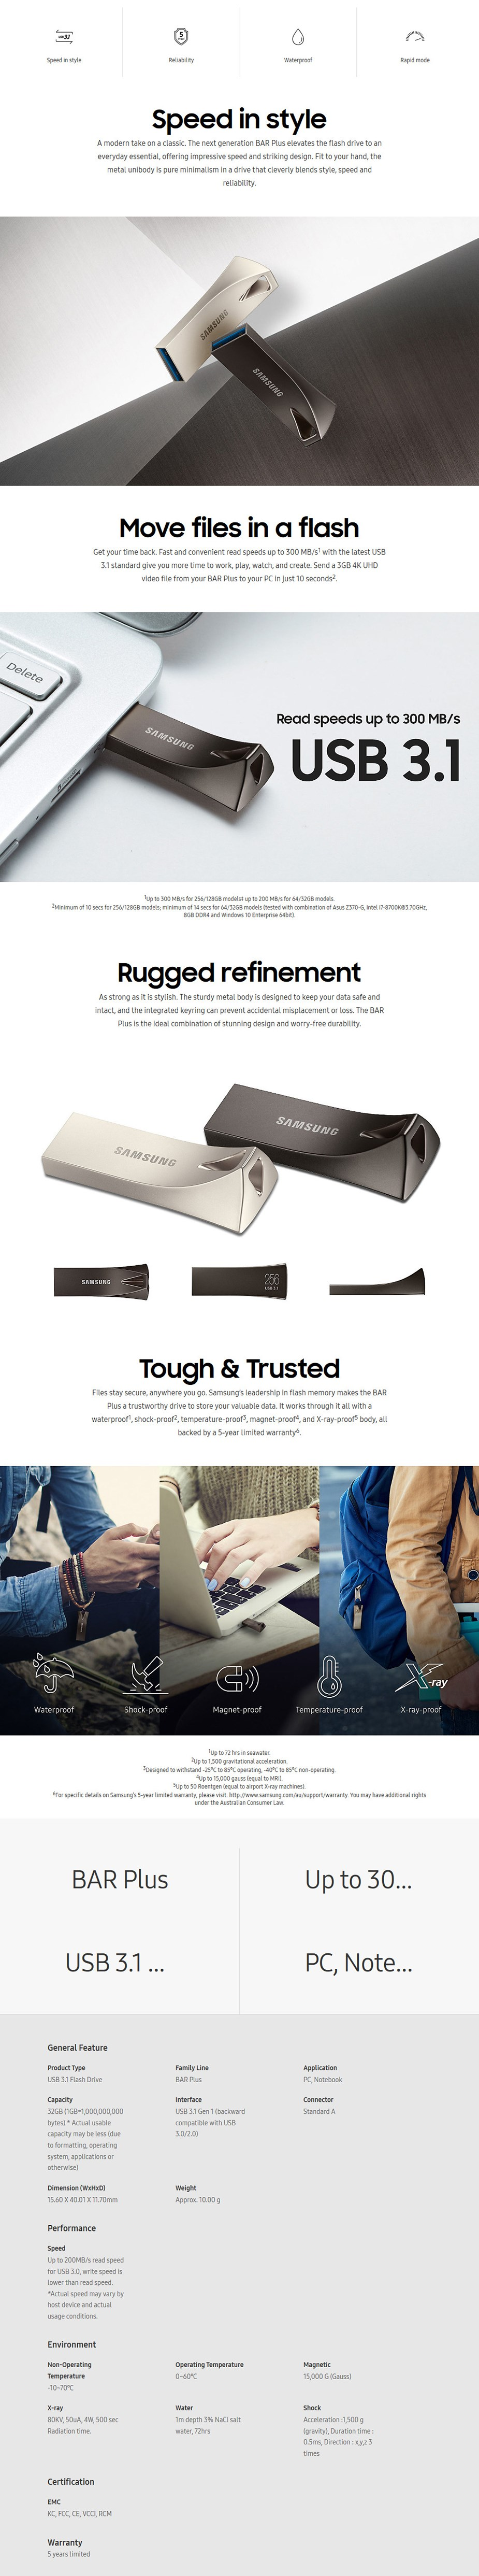 Samsung MUF-32BE4/APC 32GB USB 3.1 Bar Plus Flash Drive - Titan Gray - Desktop Overview 1